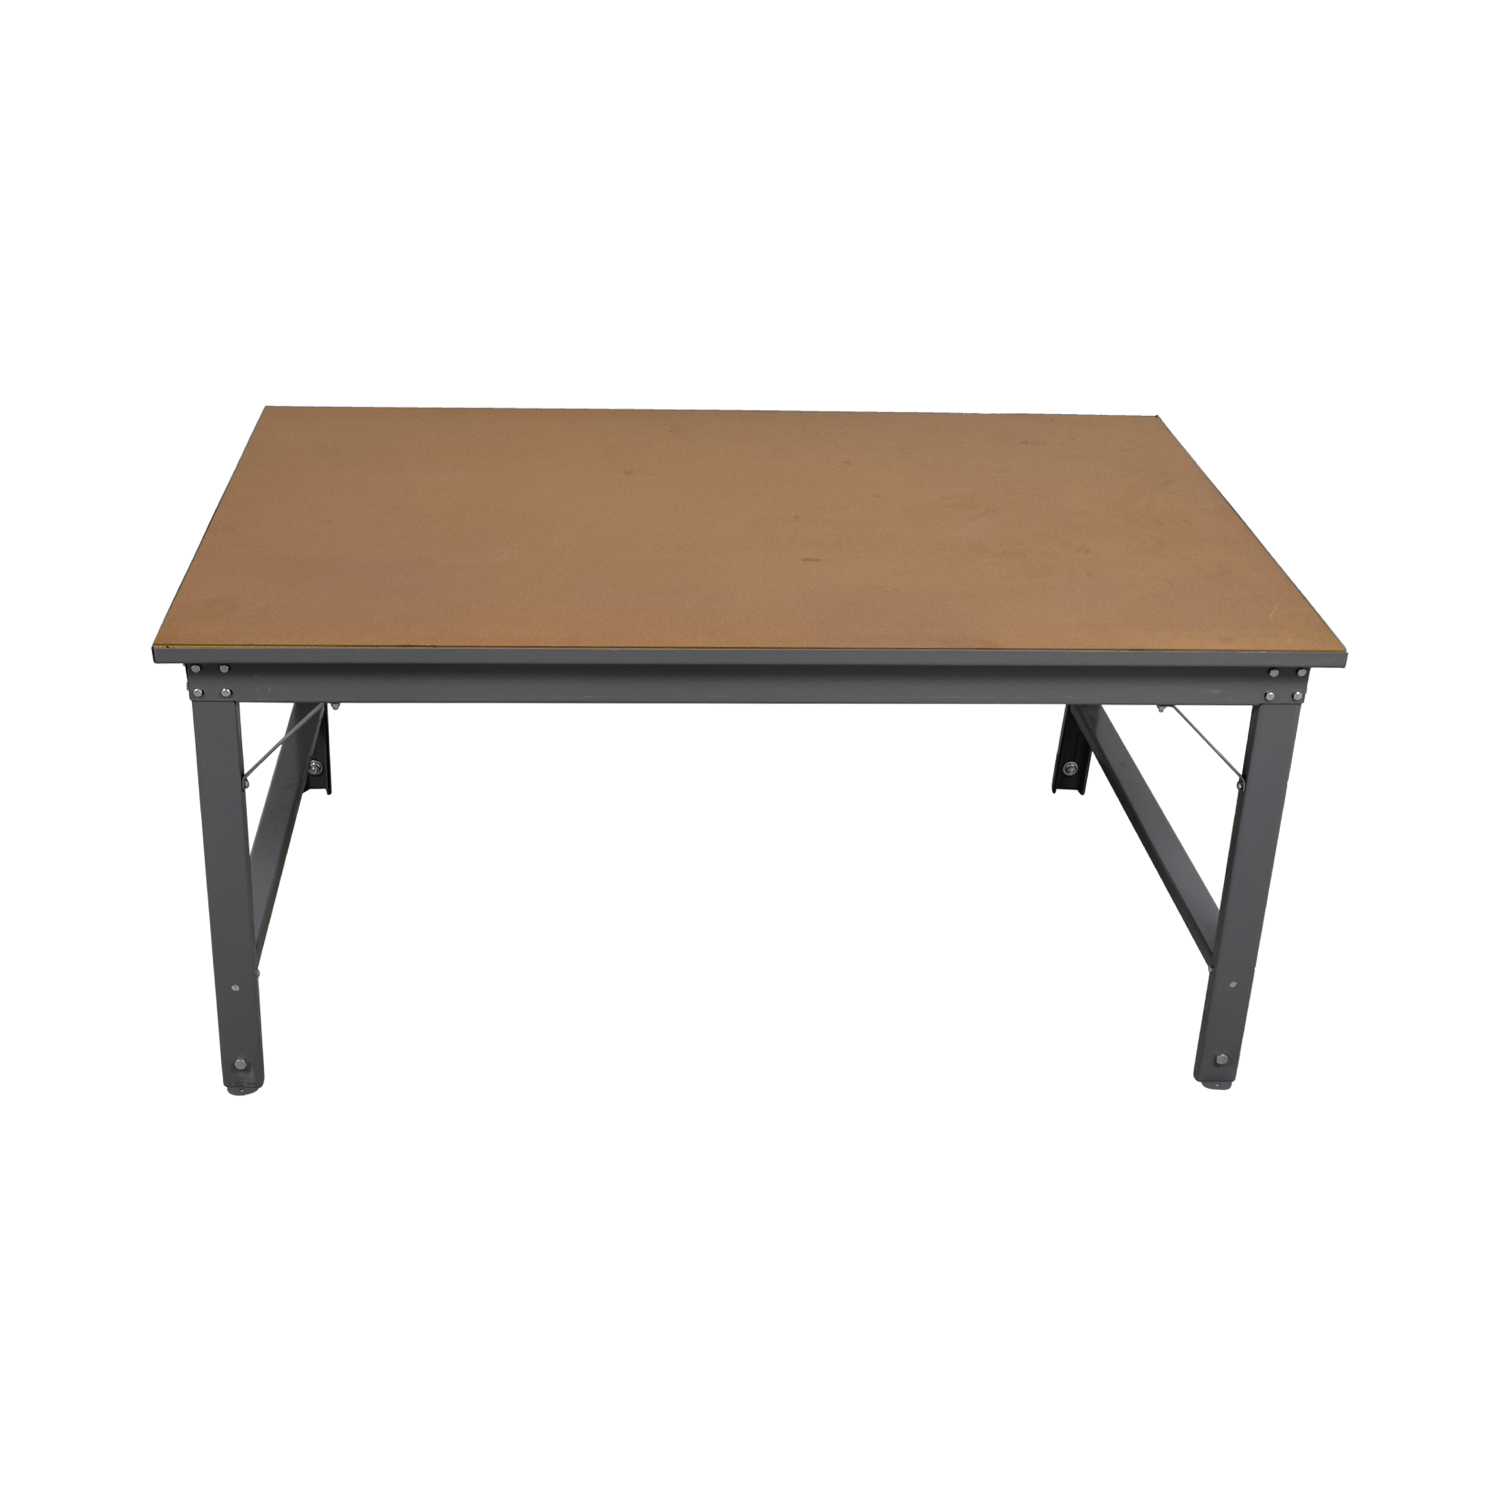 Southstar Supply Southstar Supply Industrial Tan Workshop Table nyc